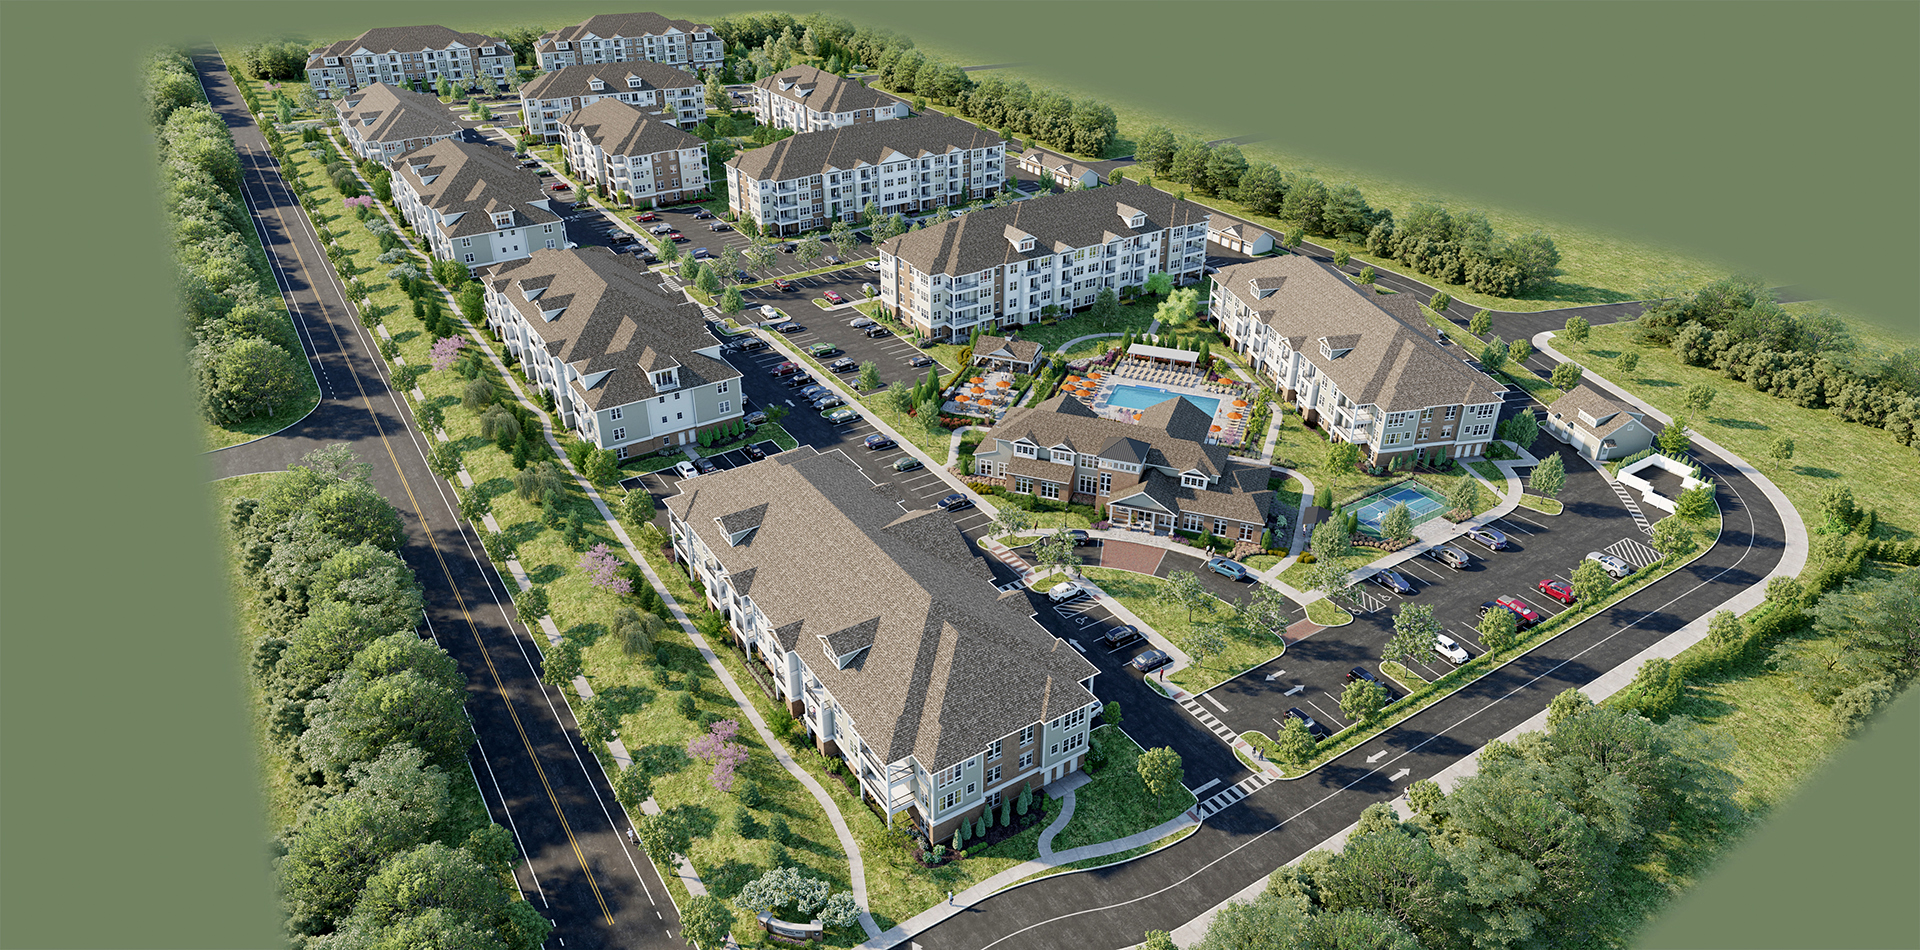 New Luxury Apartments Make Way in Princeton!